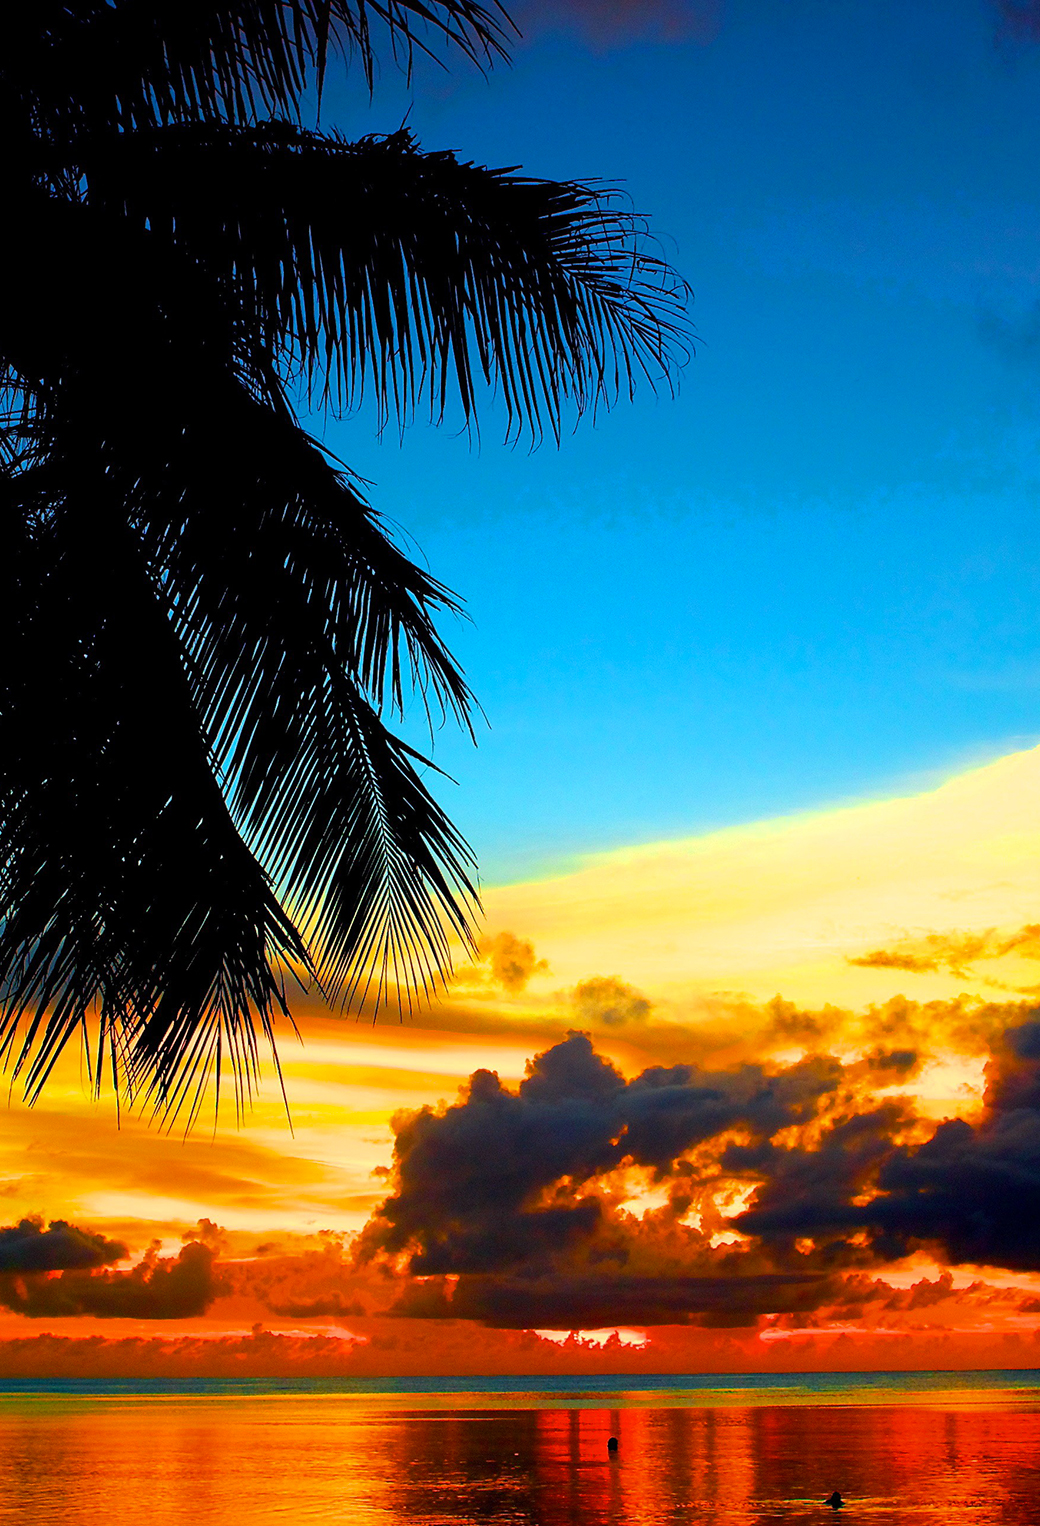 Beautiful Wallpapers For Iphone 6 Plus Lovely Tropical Sunset Wallpaper For Iphone X 8 7 6